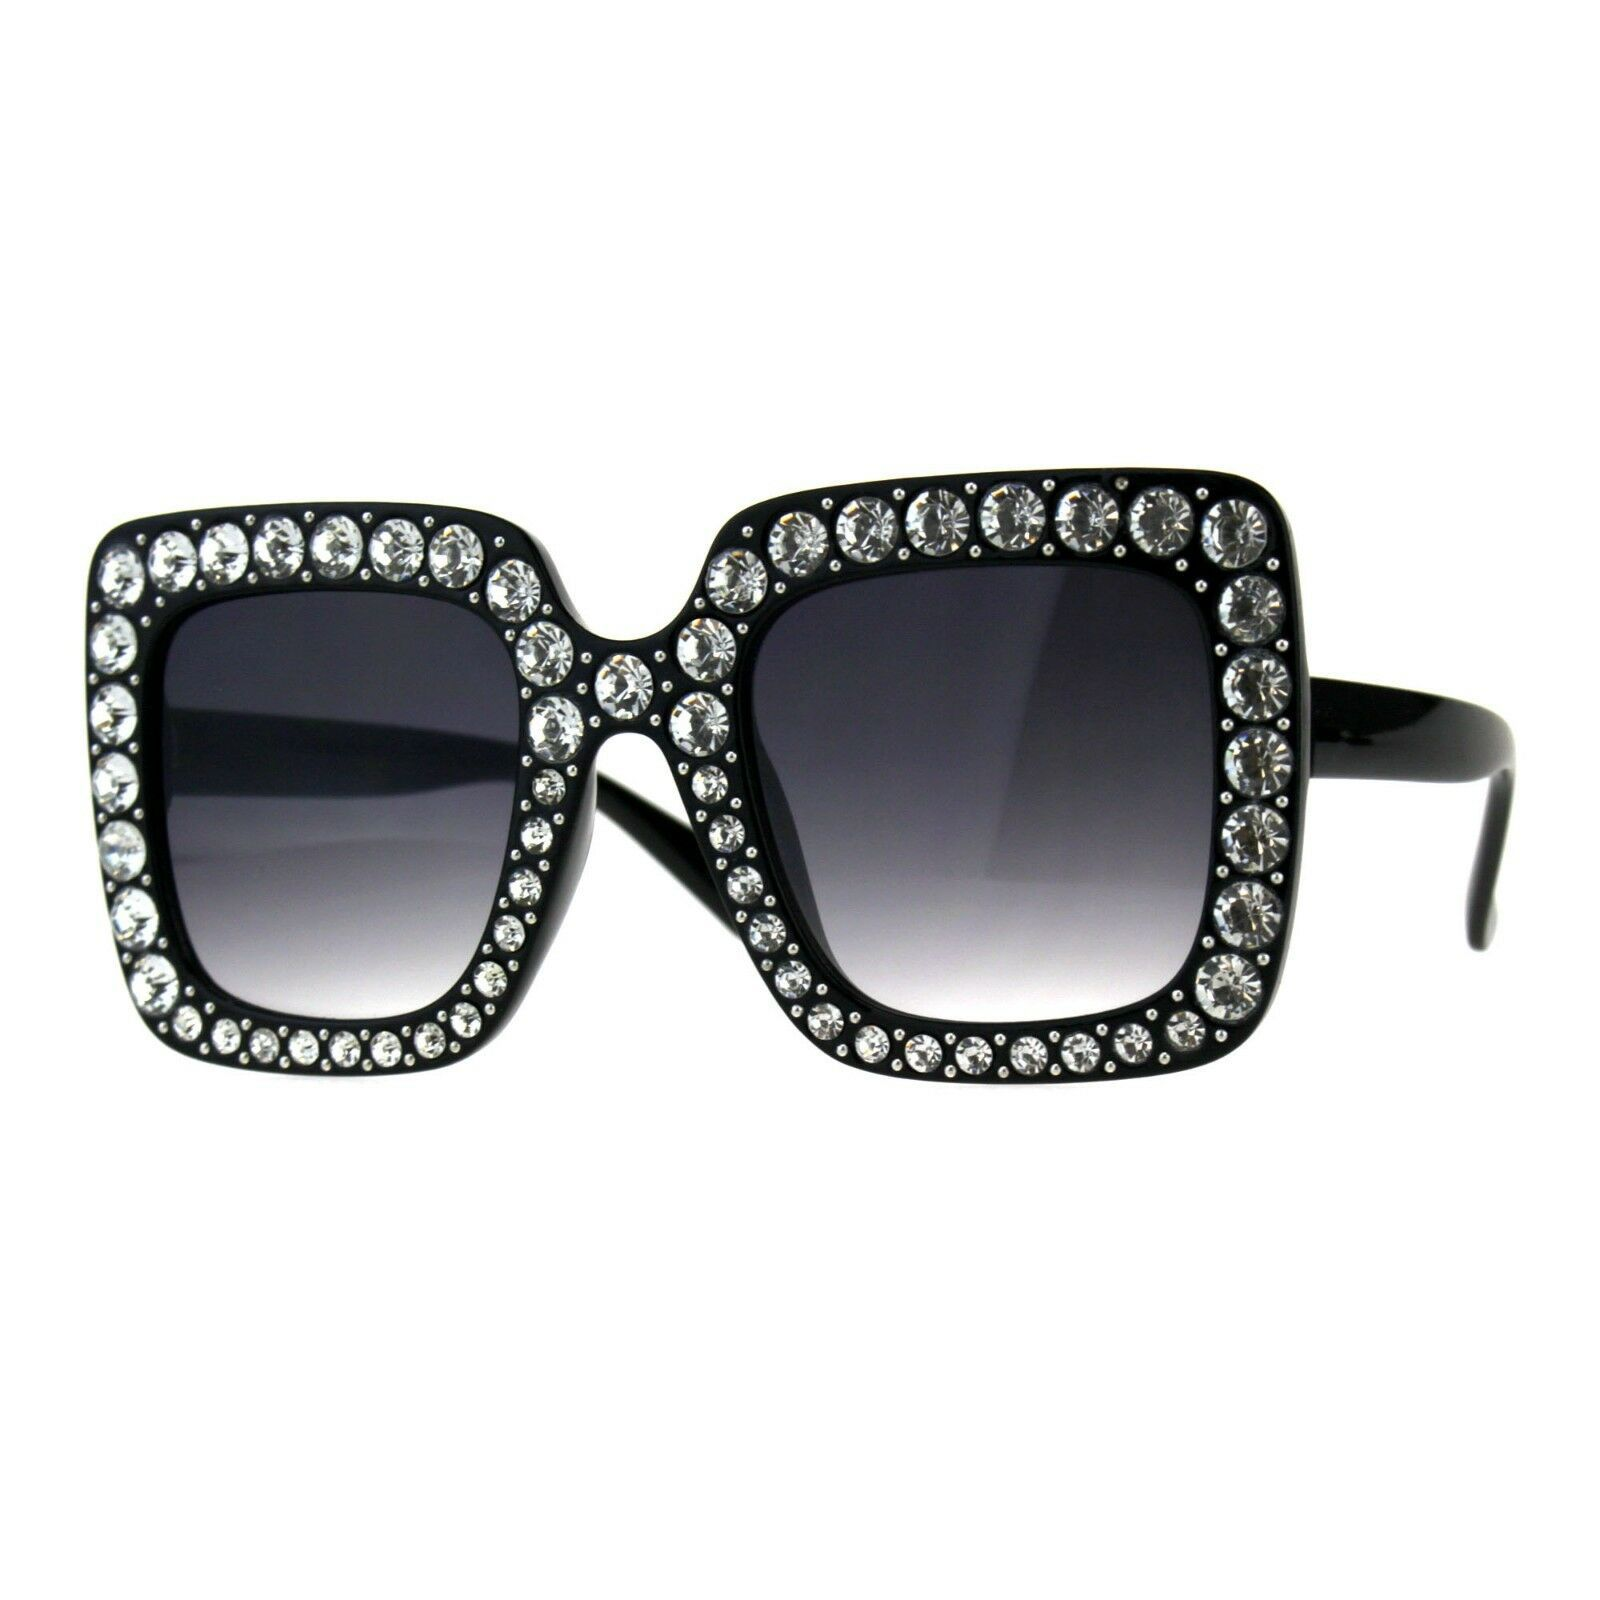 Bling Bling Rhinestone Sunglasses Oversized Square Womens Fashion